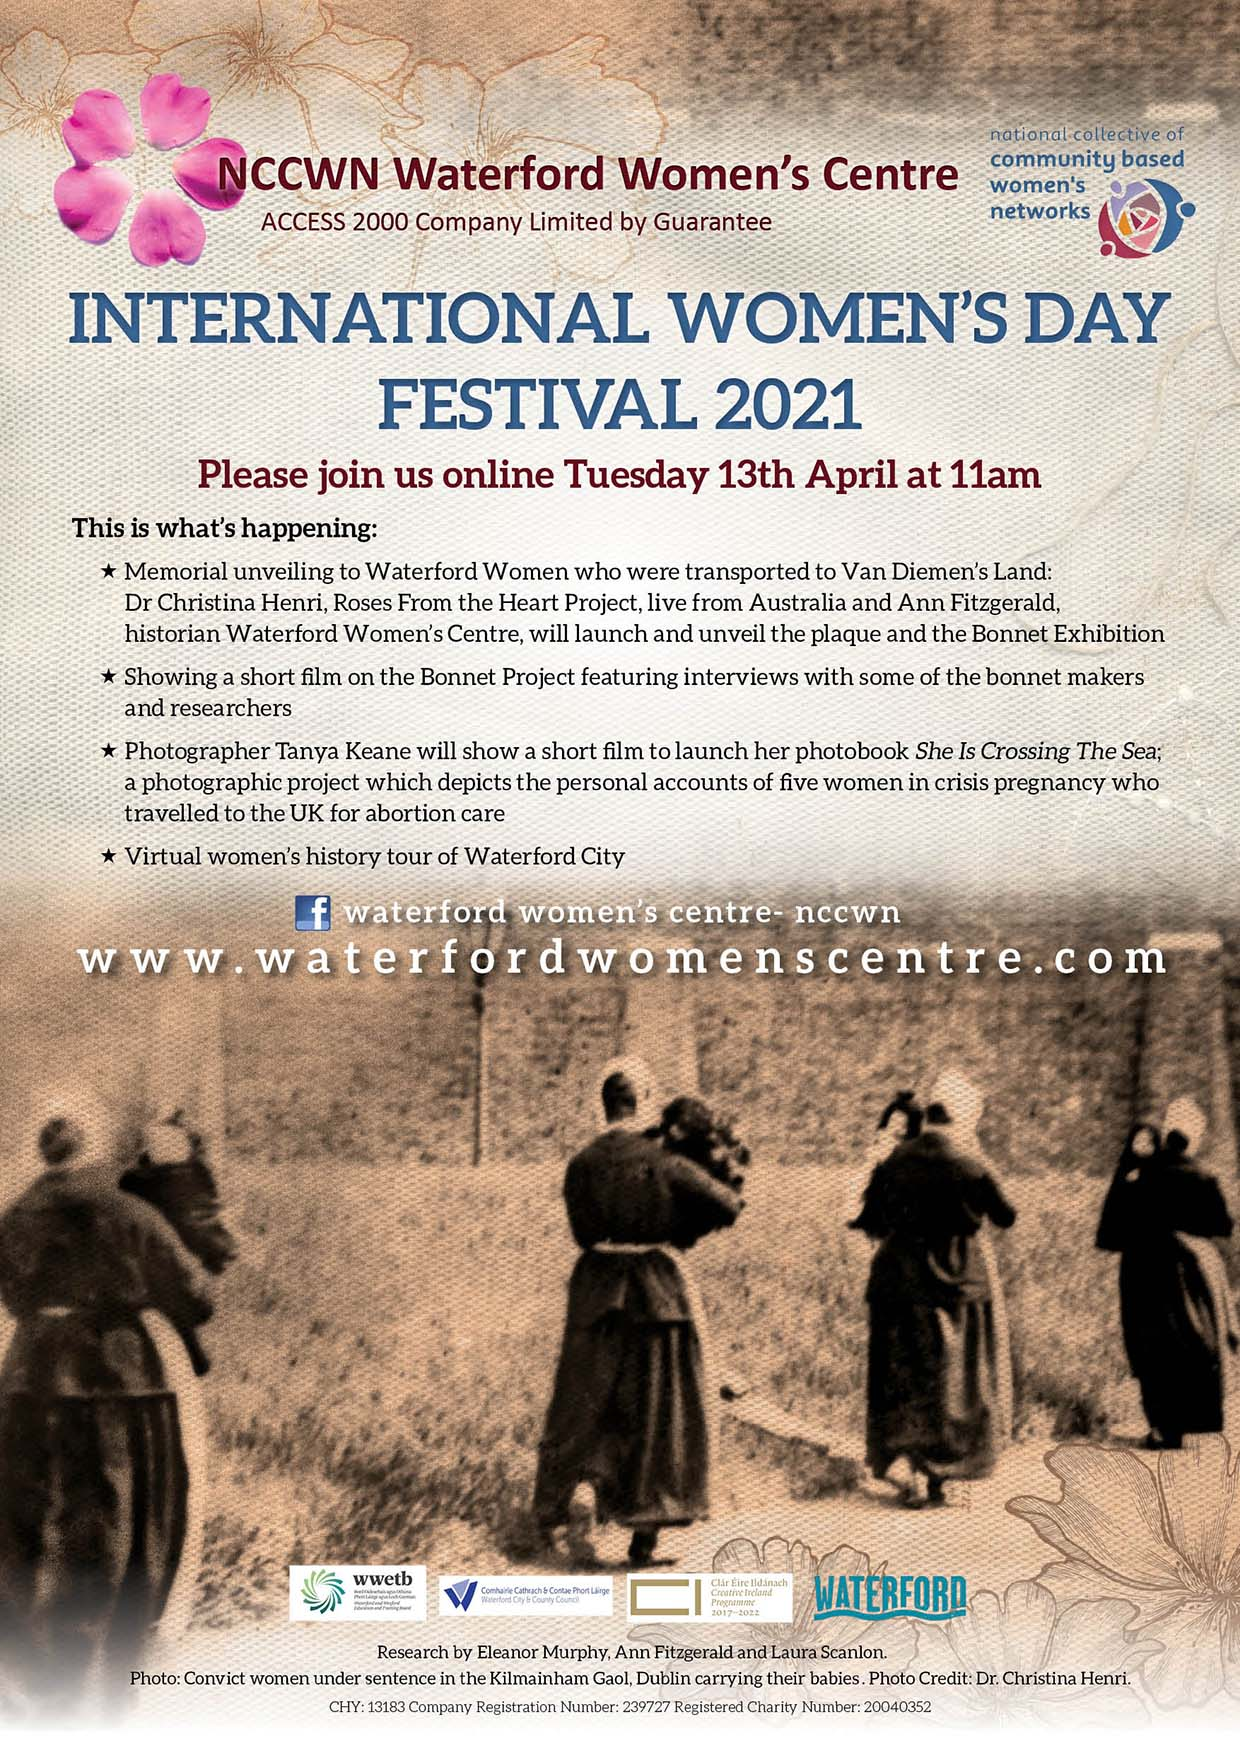 NCCWN Waterford Women's History event Tuesday 13th April